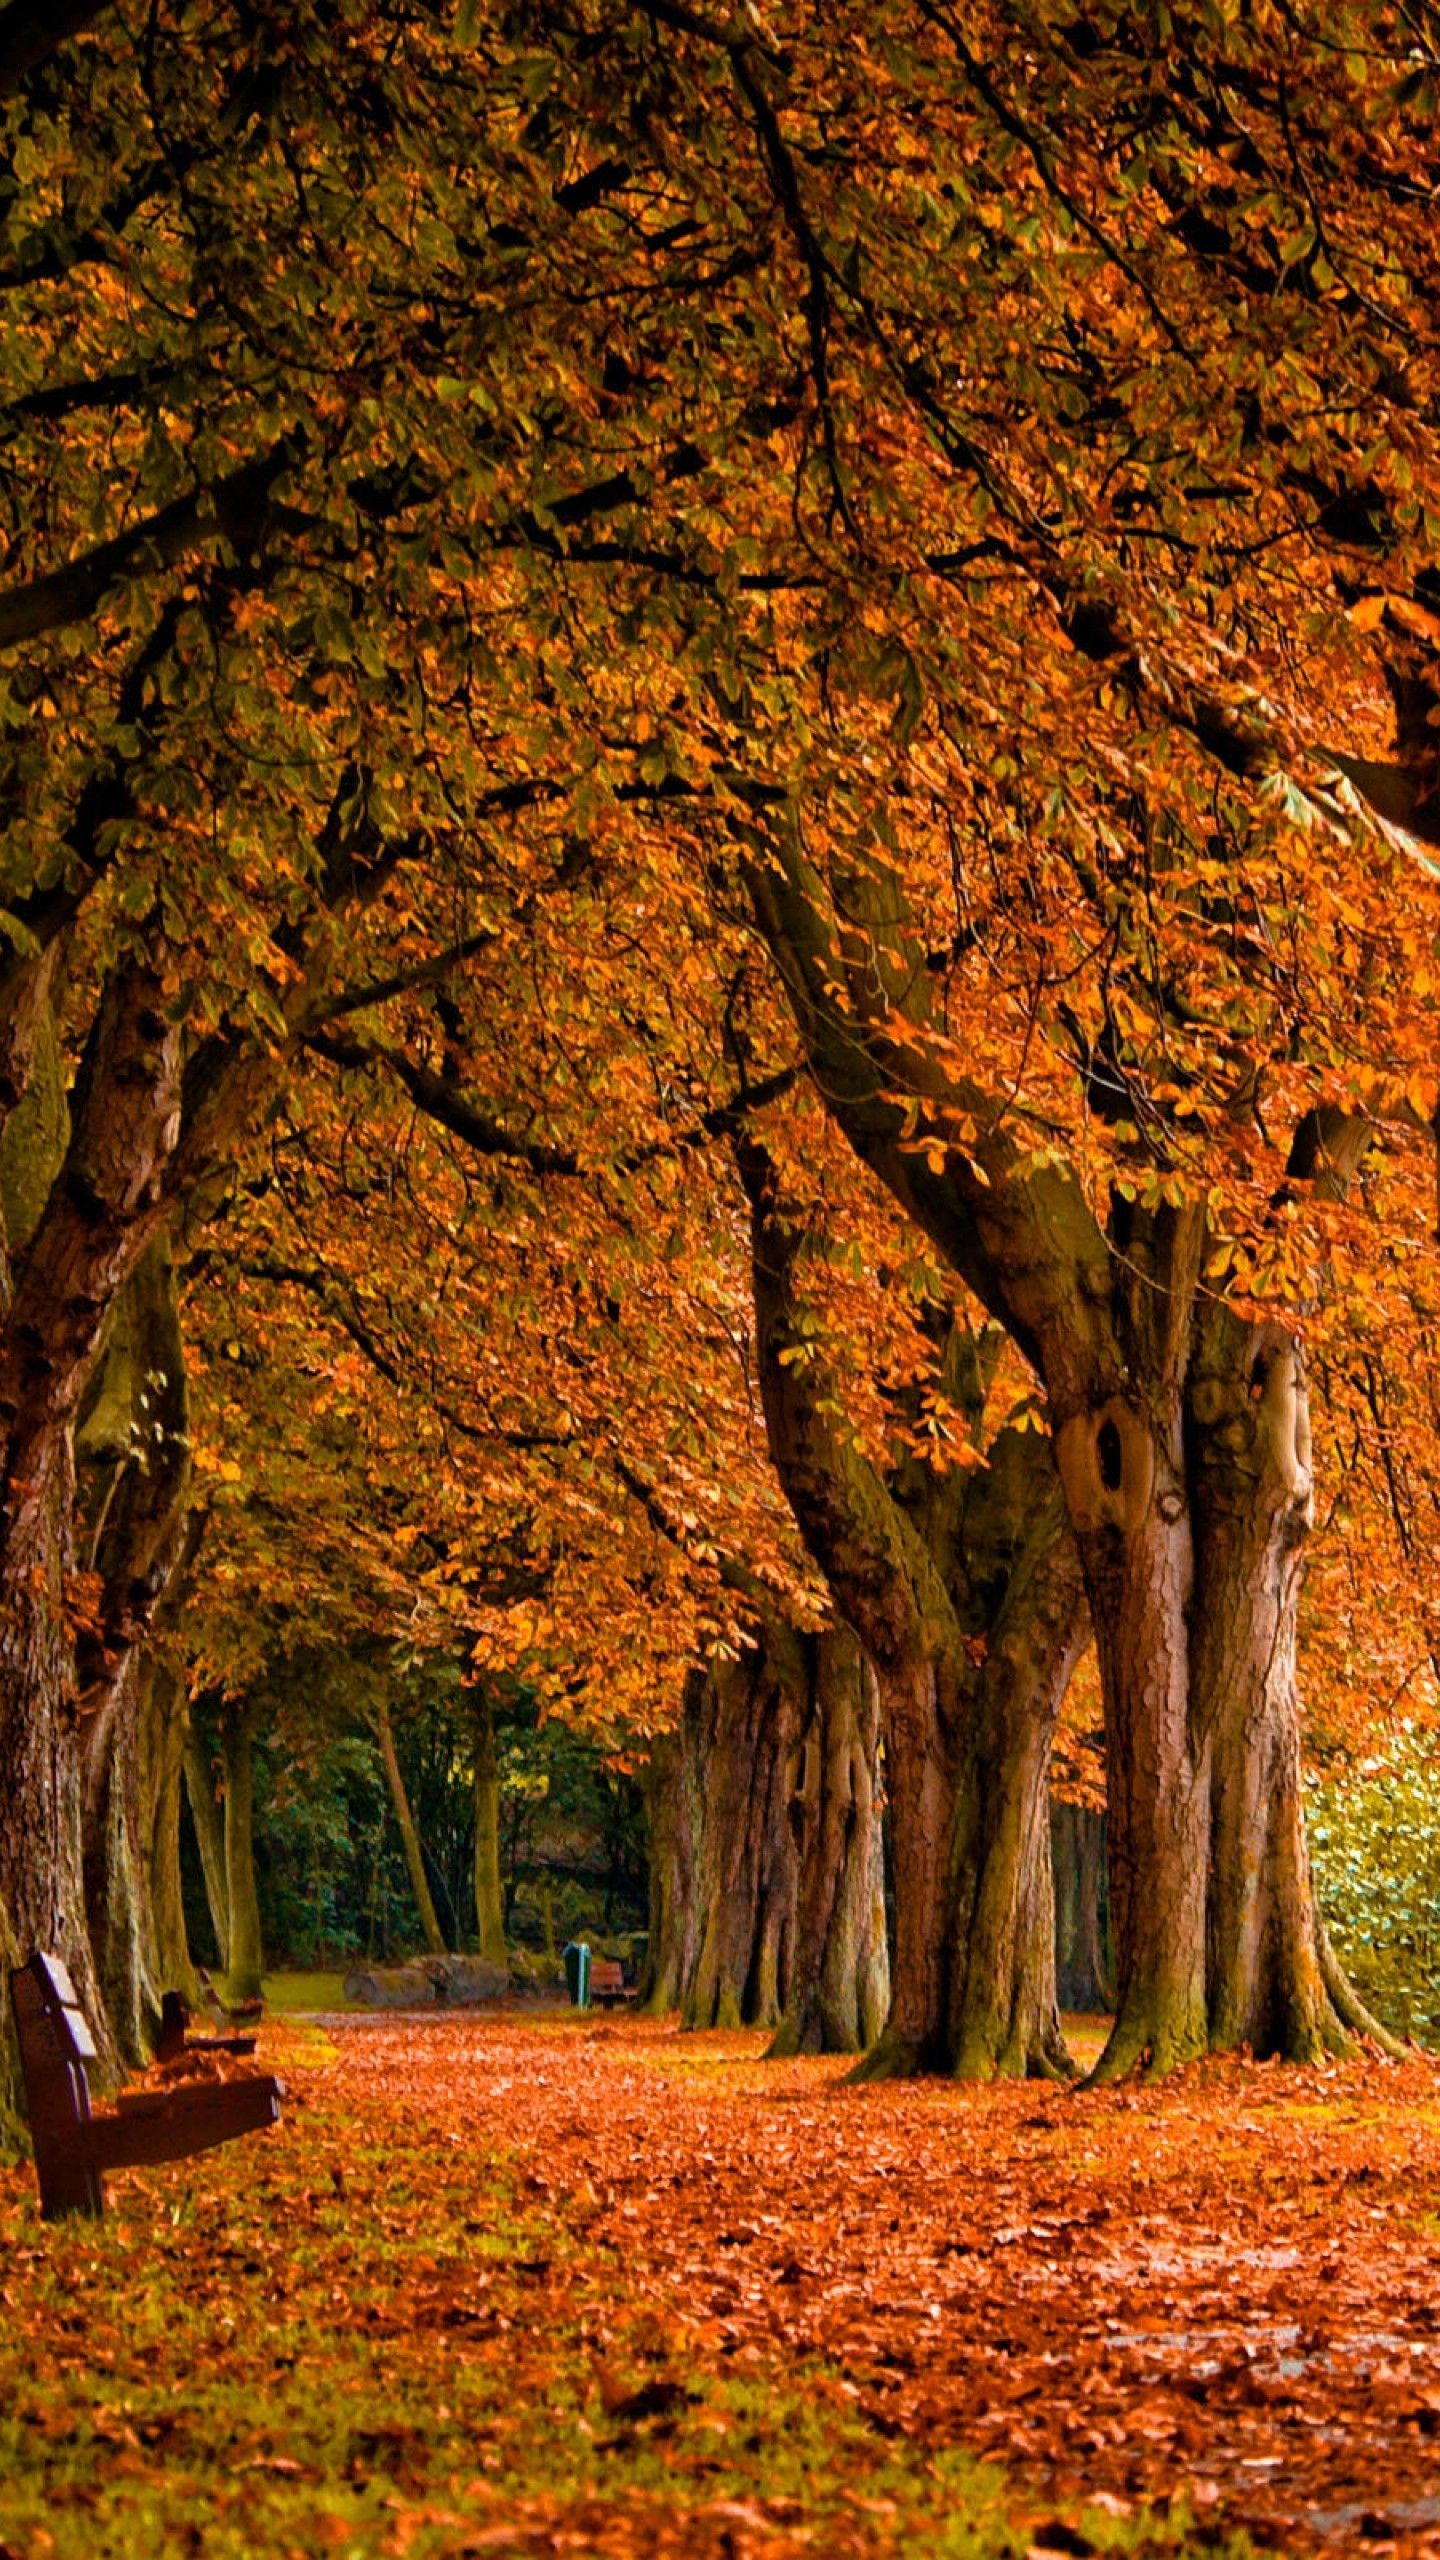 Autumn Wallpaper Android Apps on Google Play HD